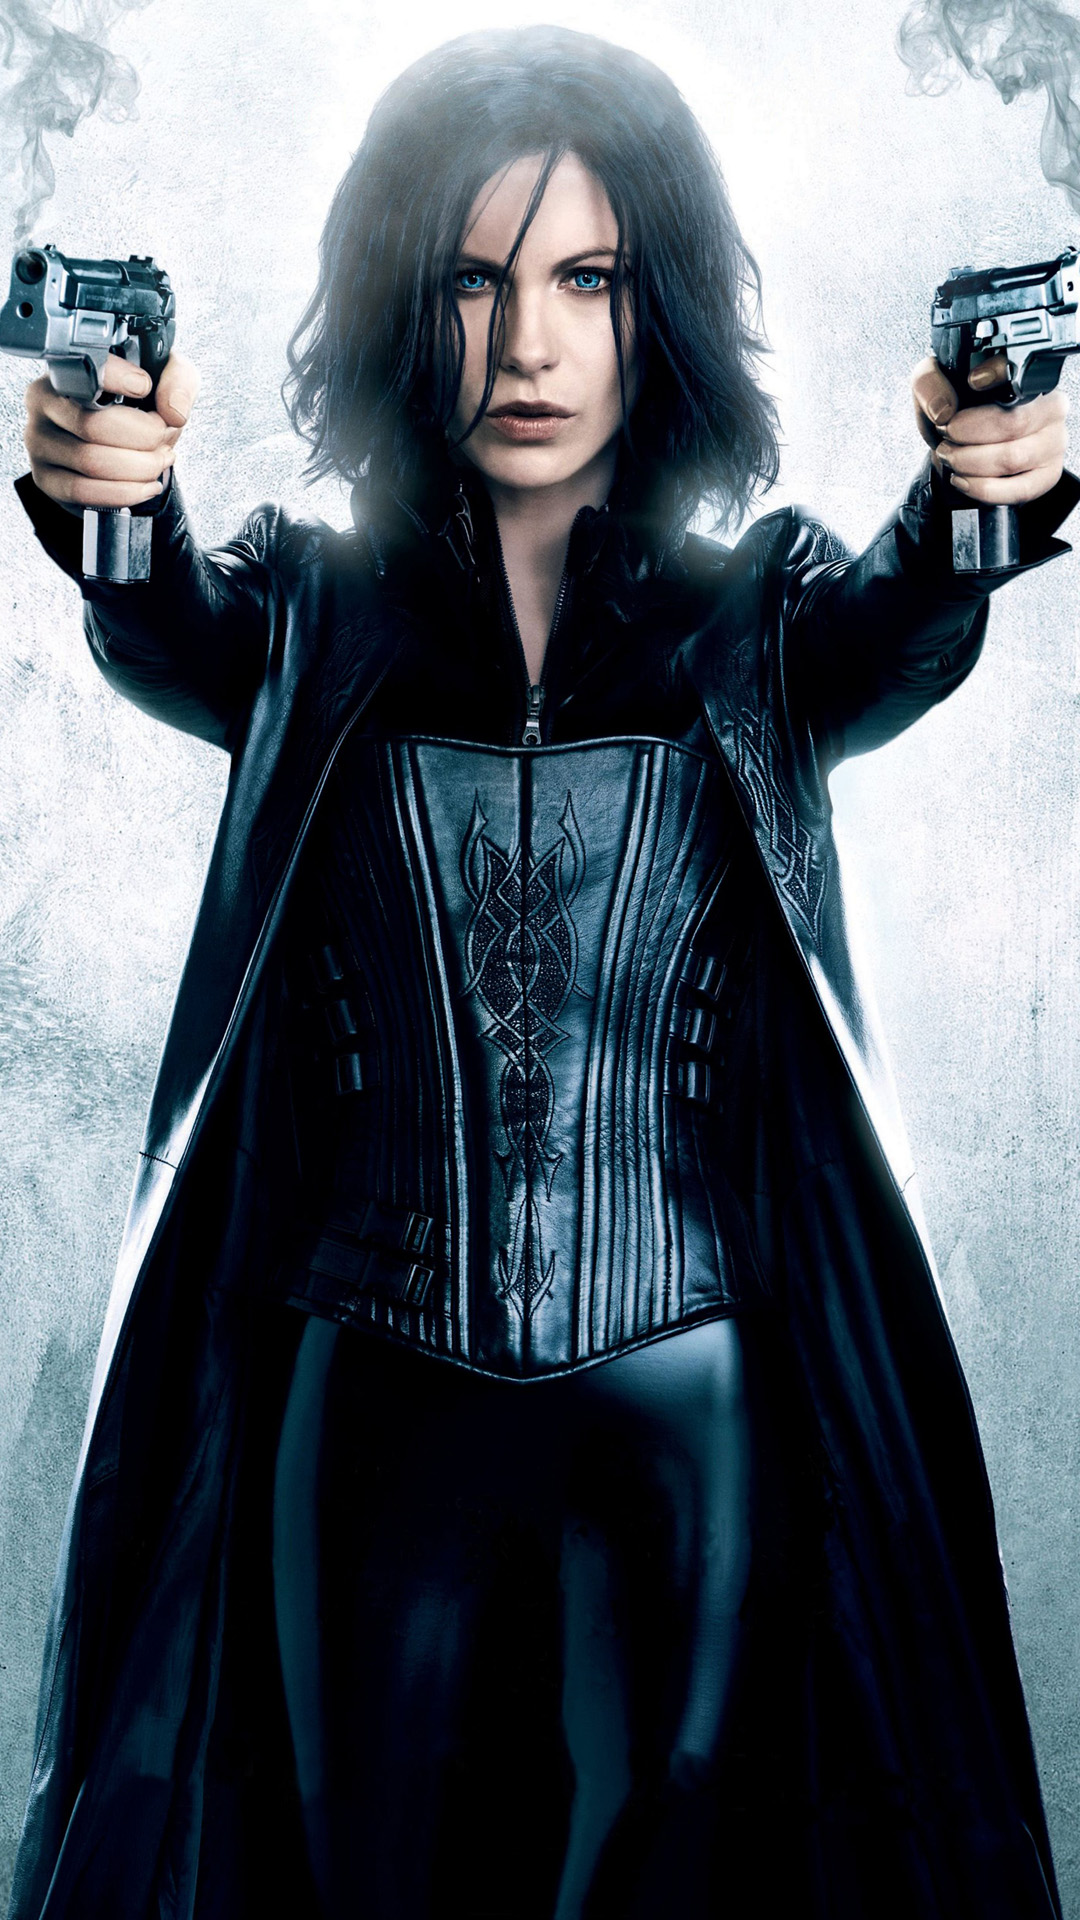 Underworld Awakening Best Htc One Wallpapers Free And Easy To